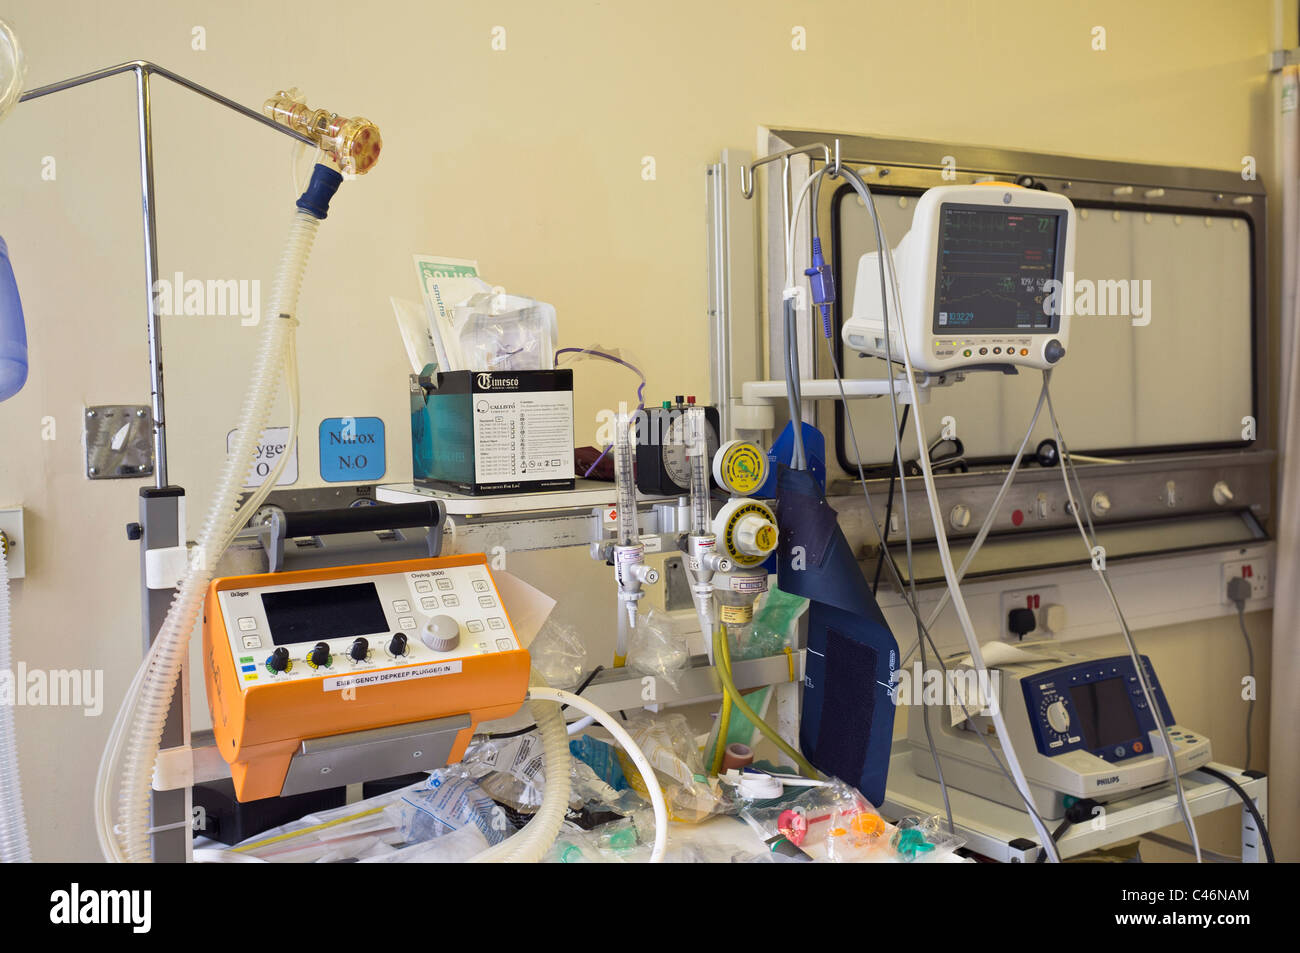 UK Medical monitoring equipment in the Resuscitation unit in the Accident and Emergency department of an NHS hospital - Stock Image